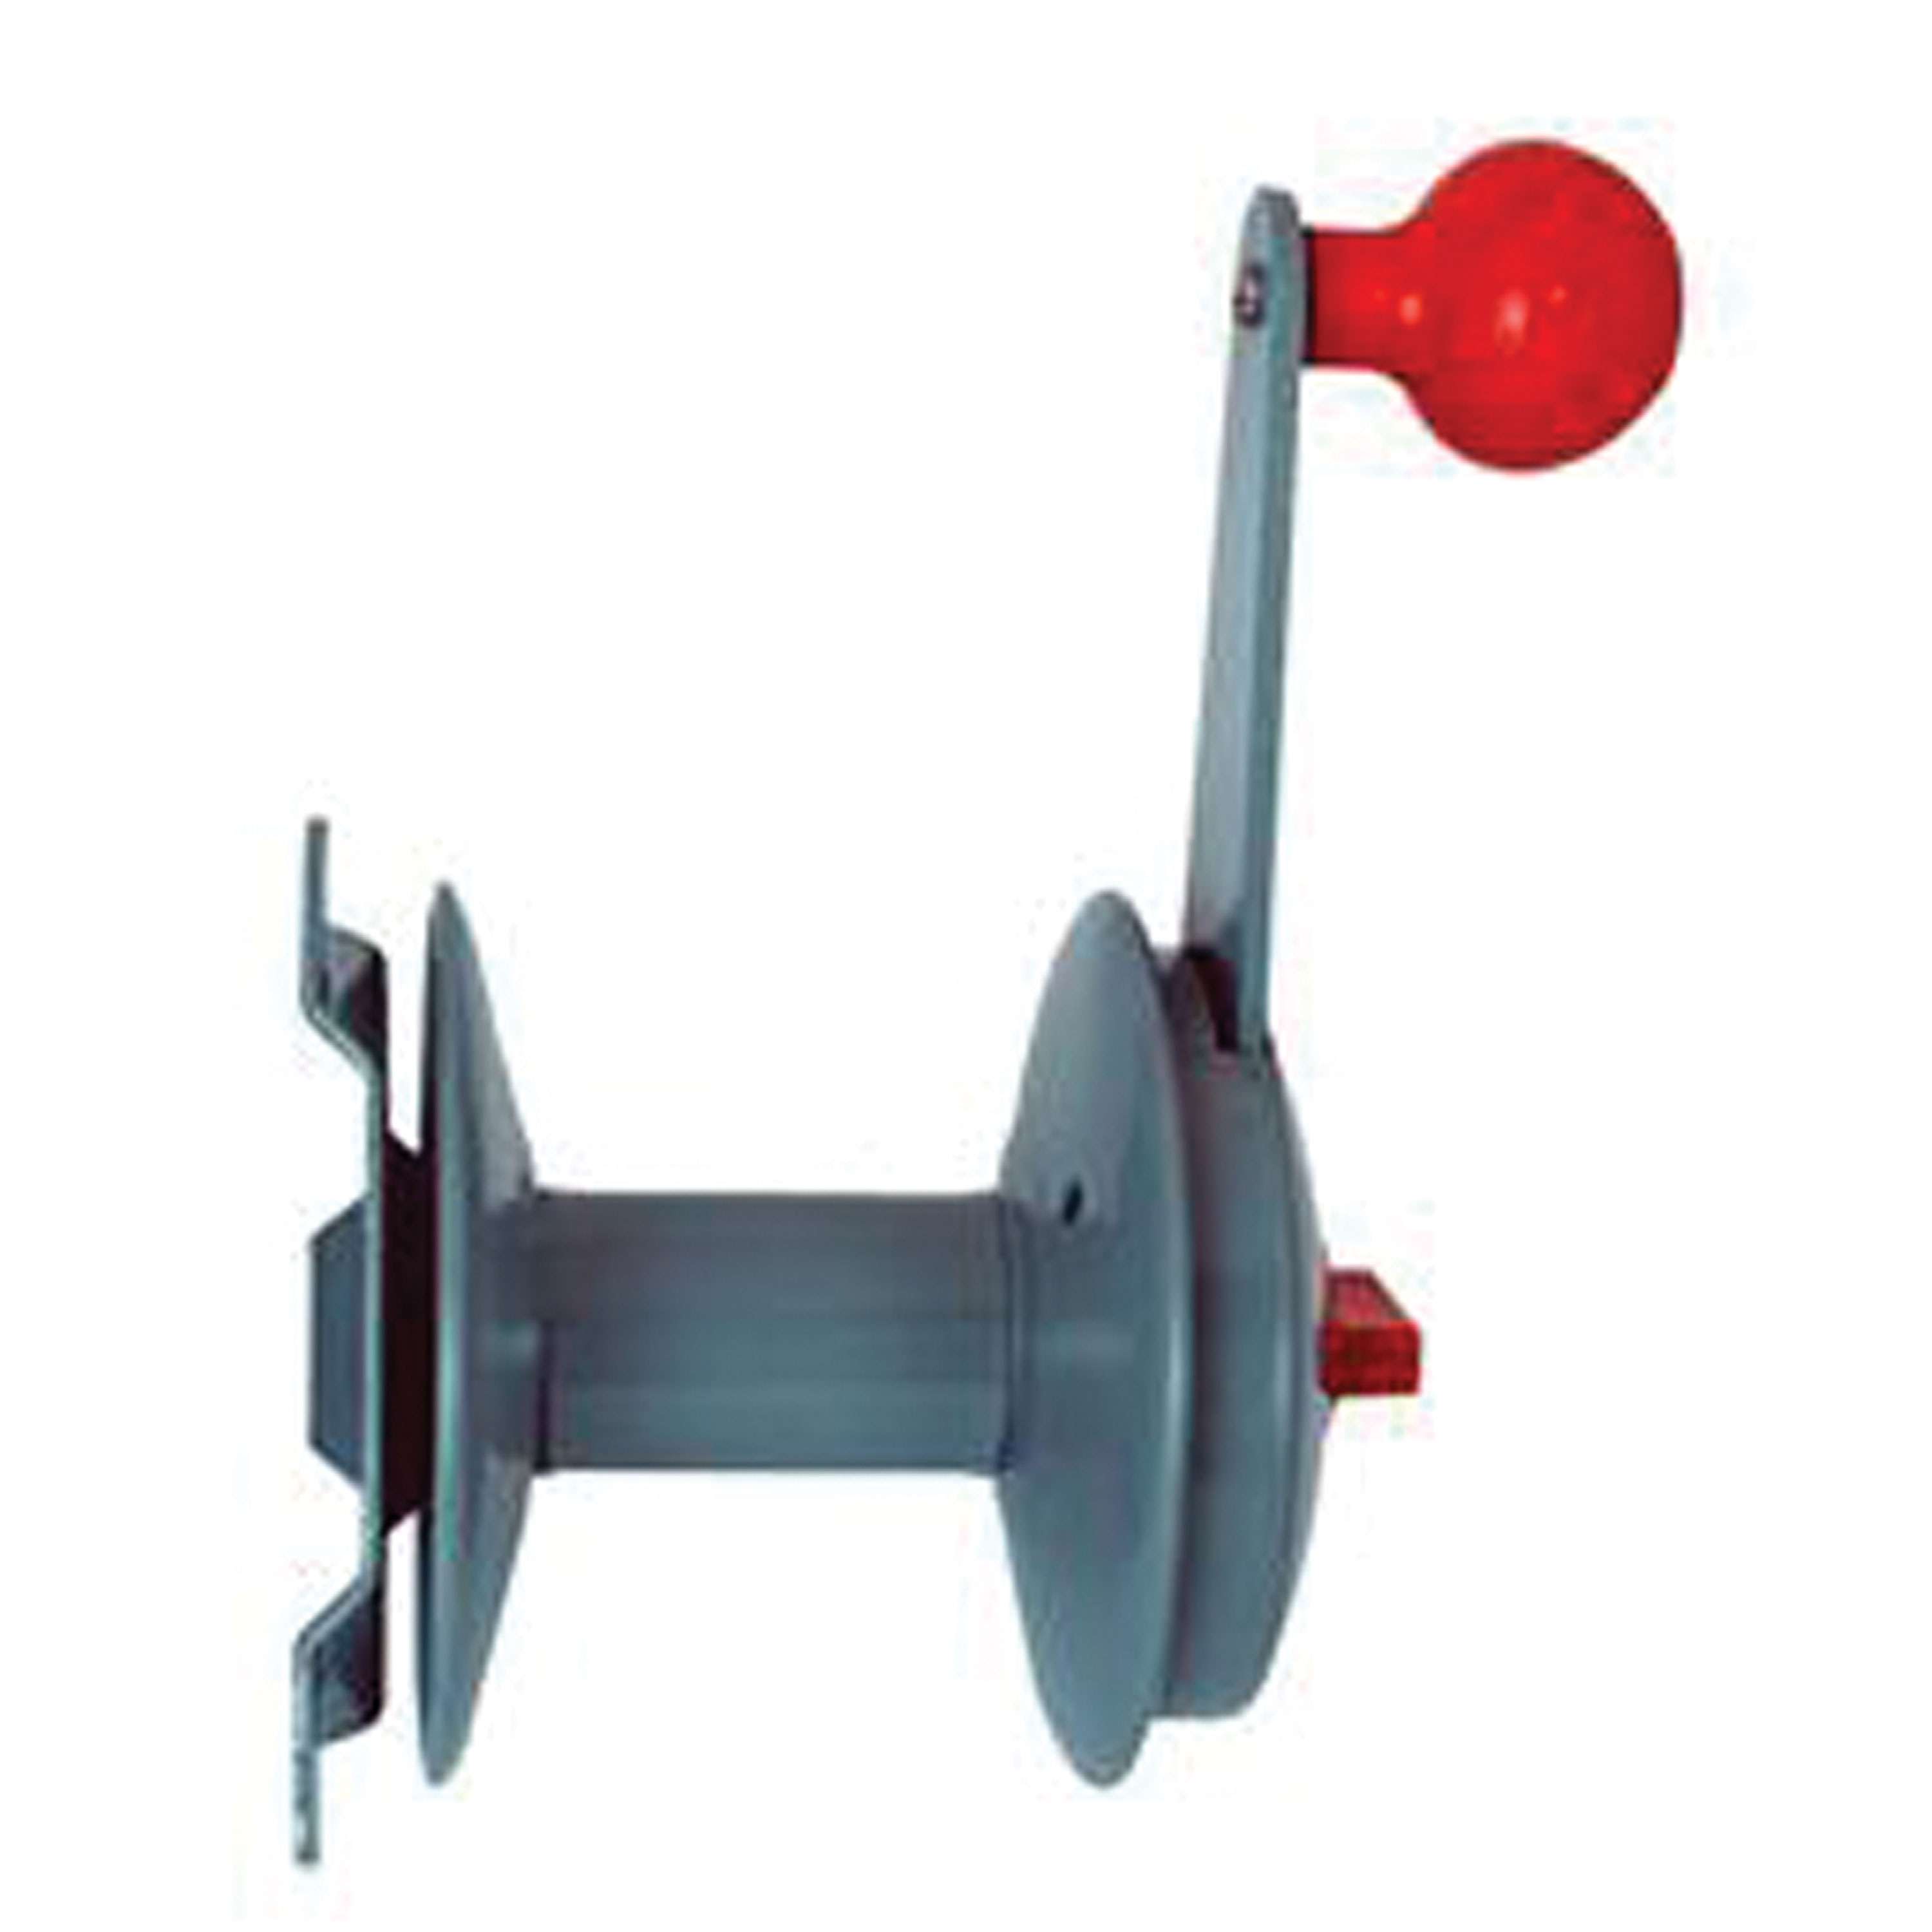 Attwood 2908-6 Pulley System for Anchor Lift System by Attwood Corporation